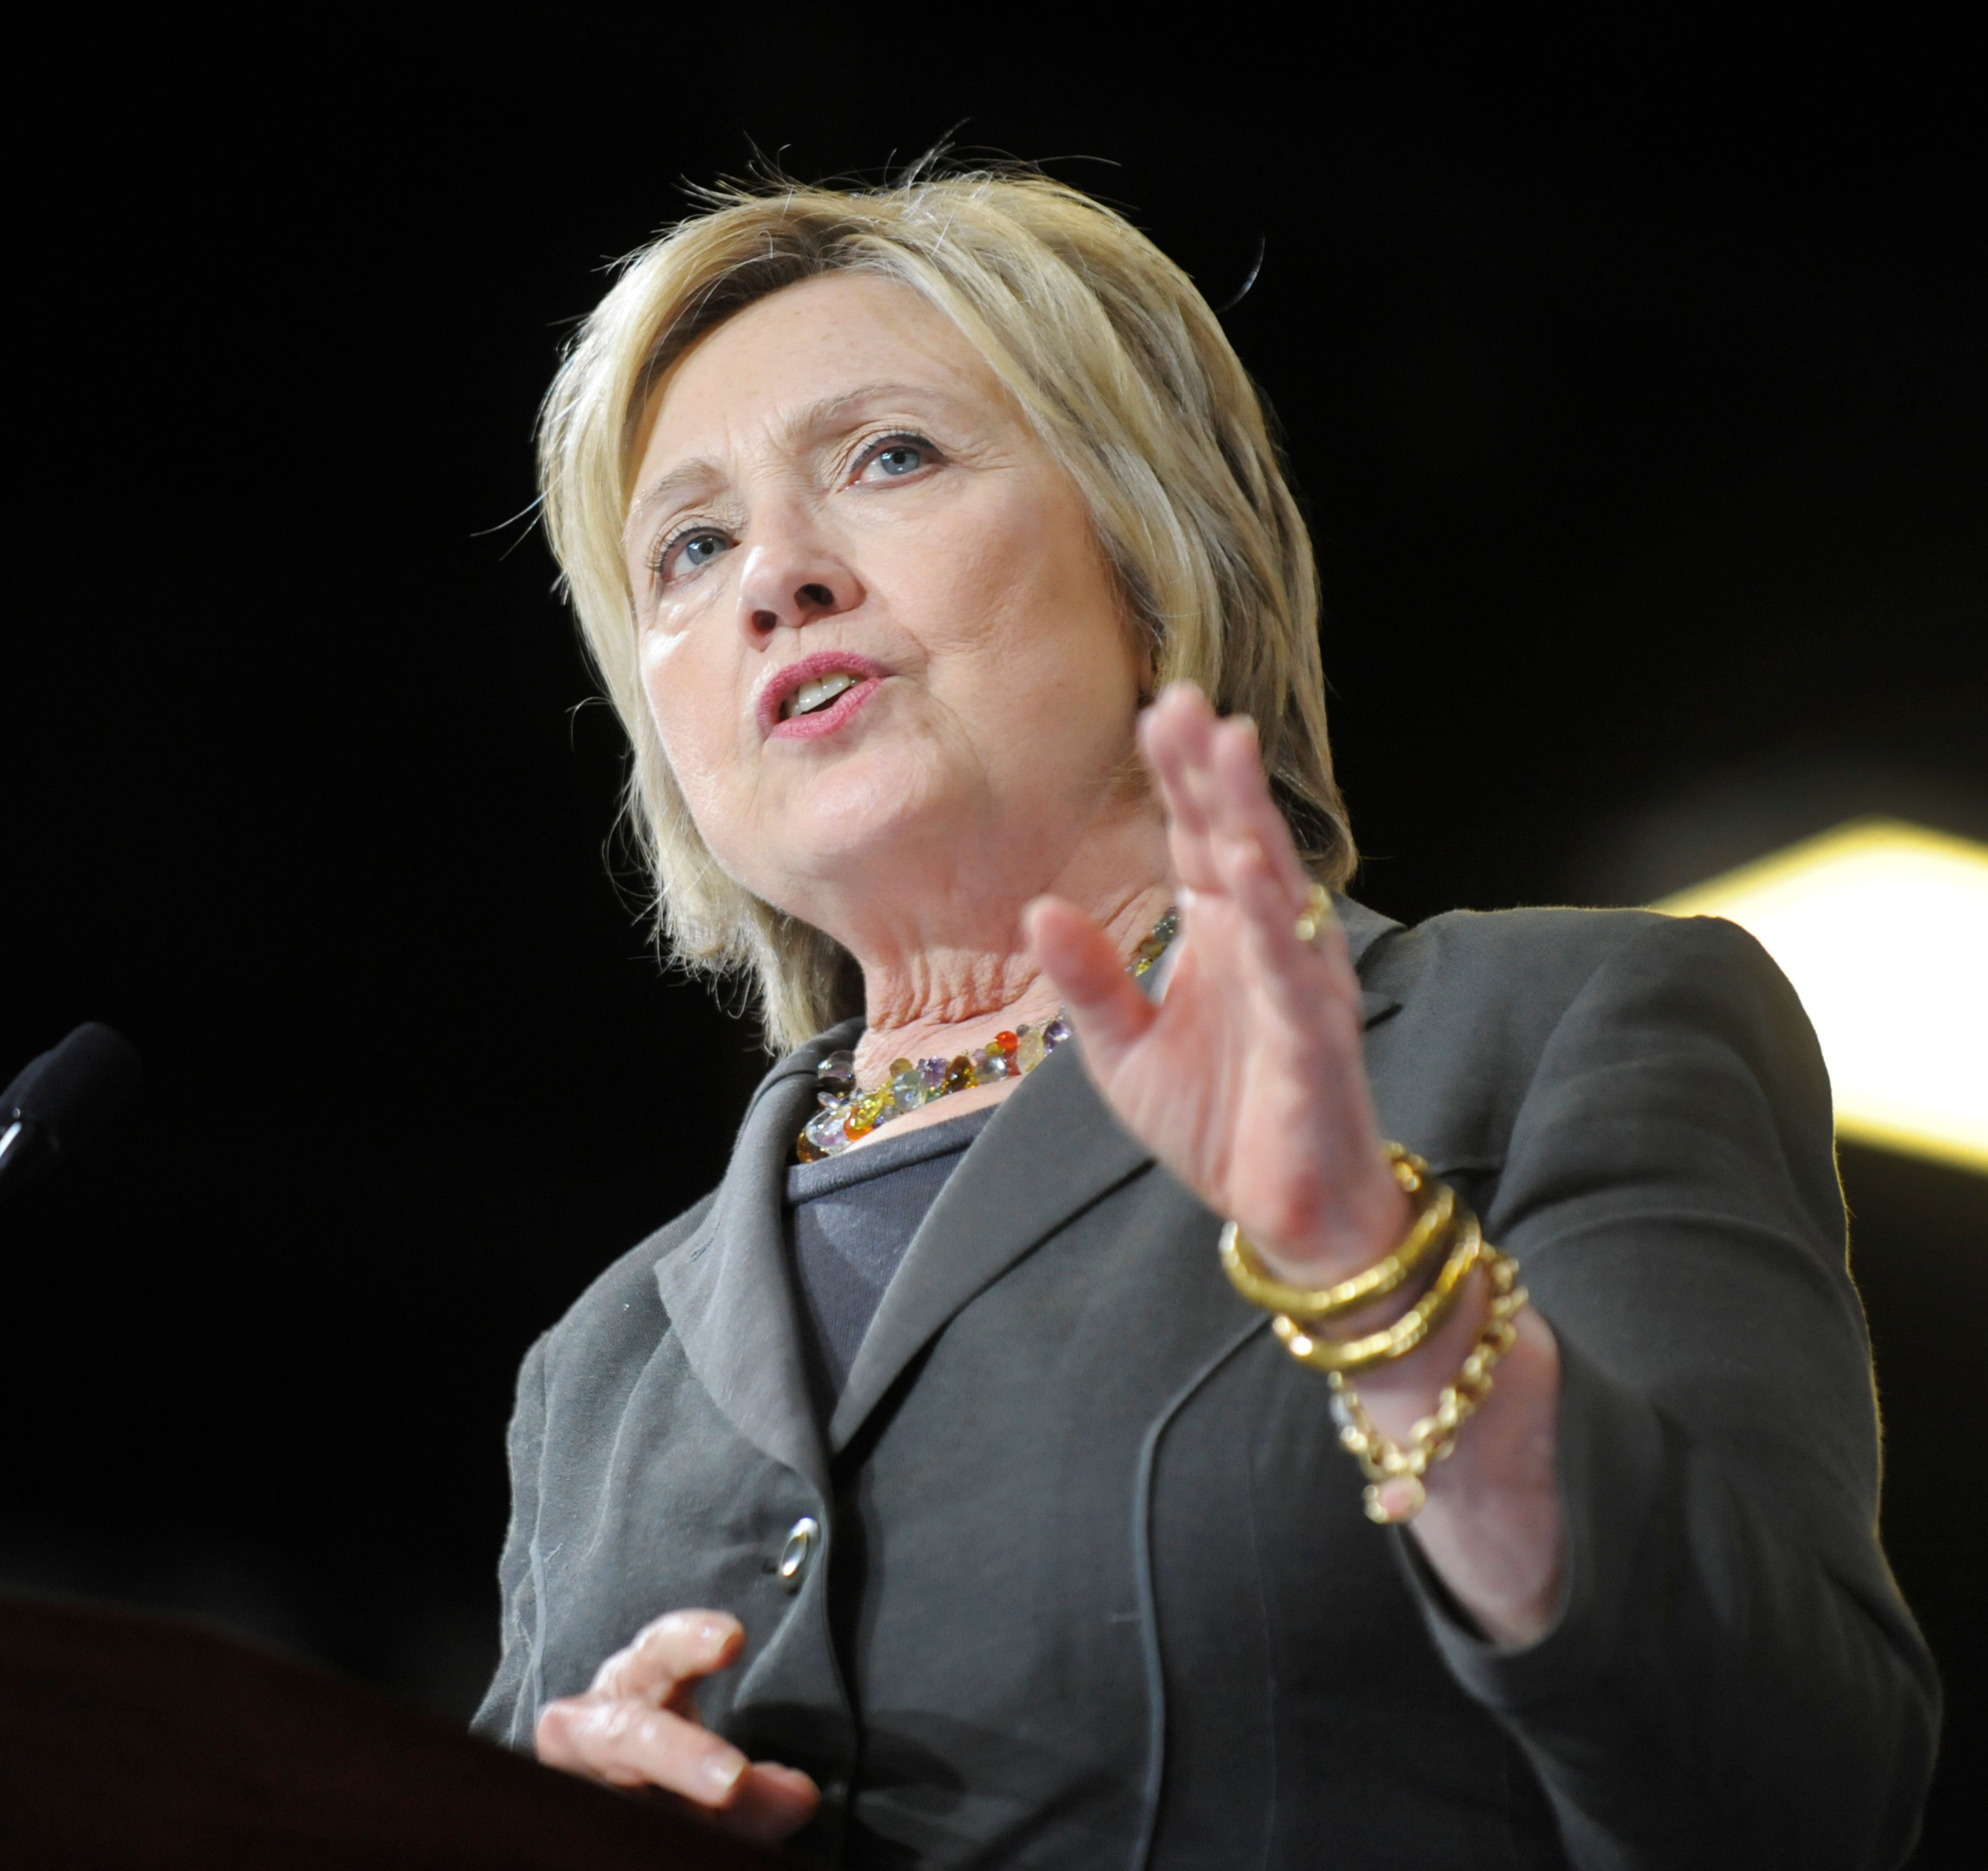 Hillary Clinton doesn't seem to be backing down on her opposition to the Trans-Pacific Partnership.